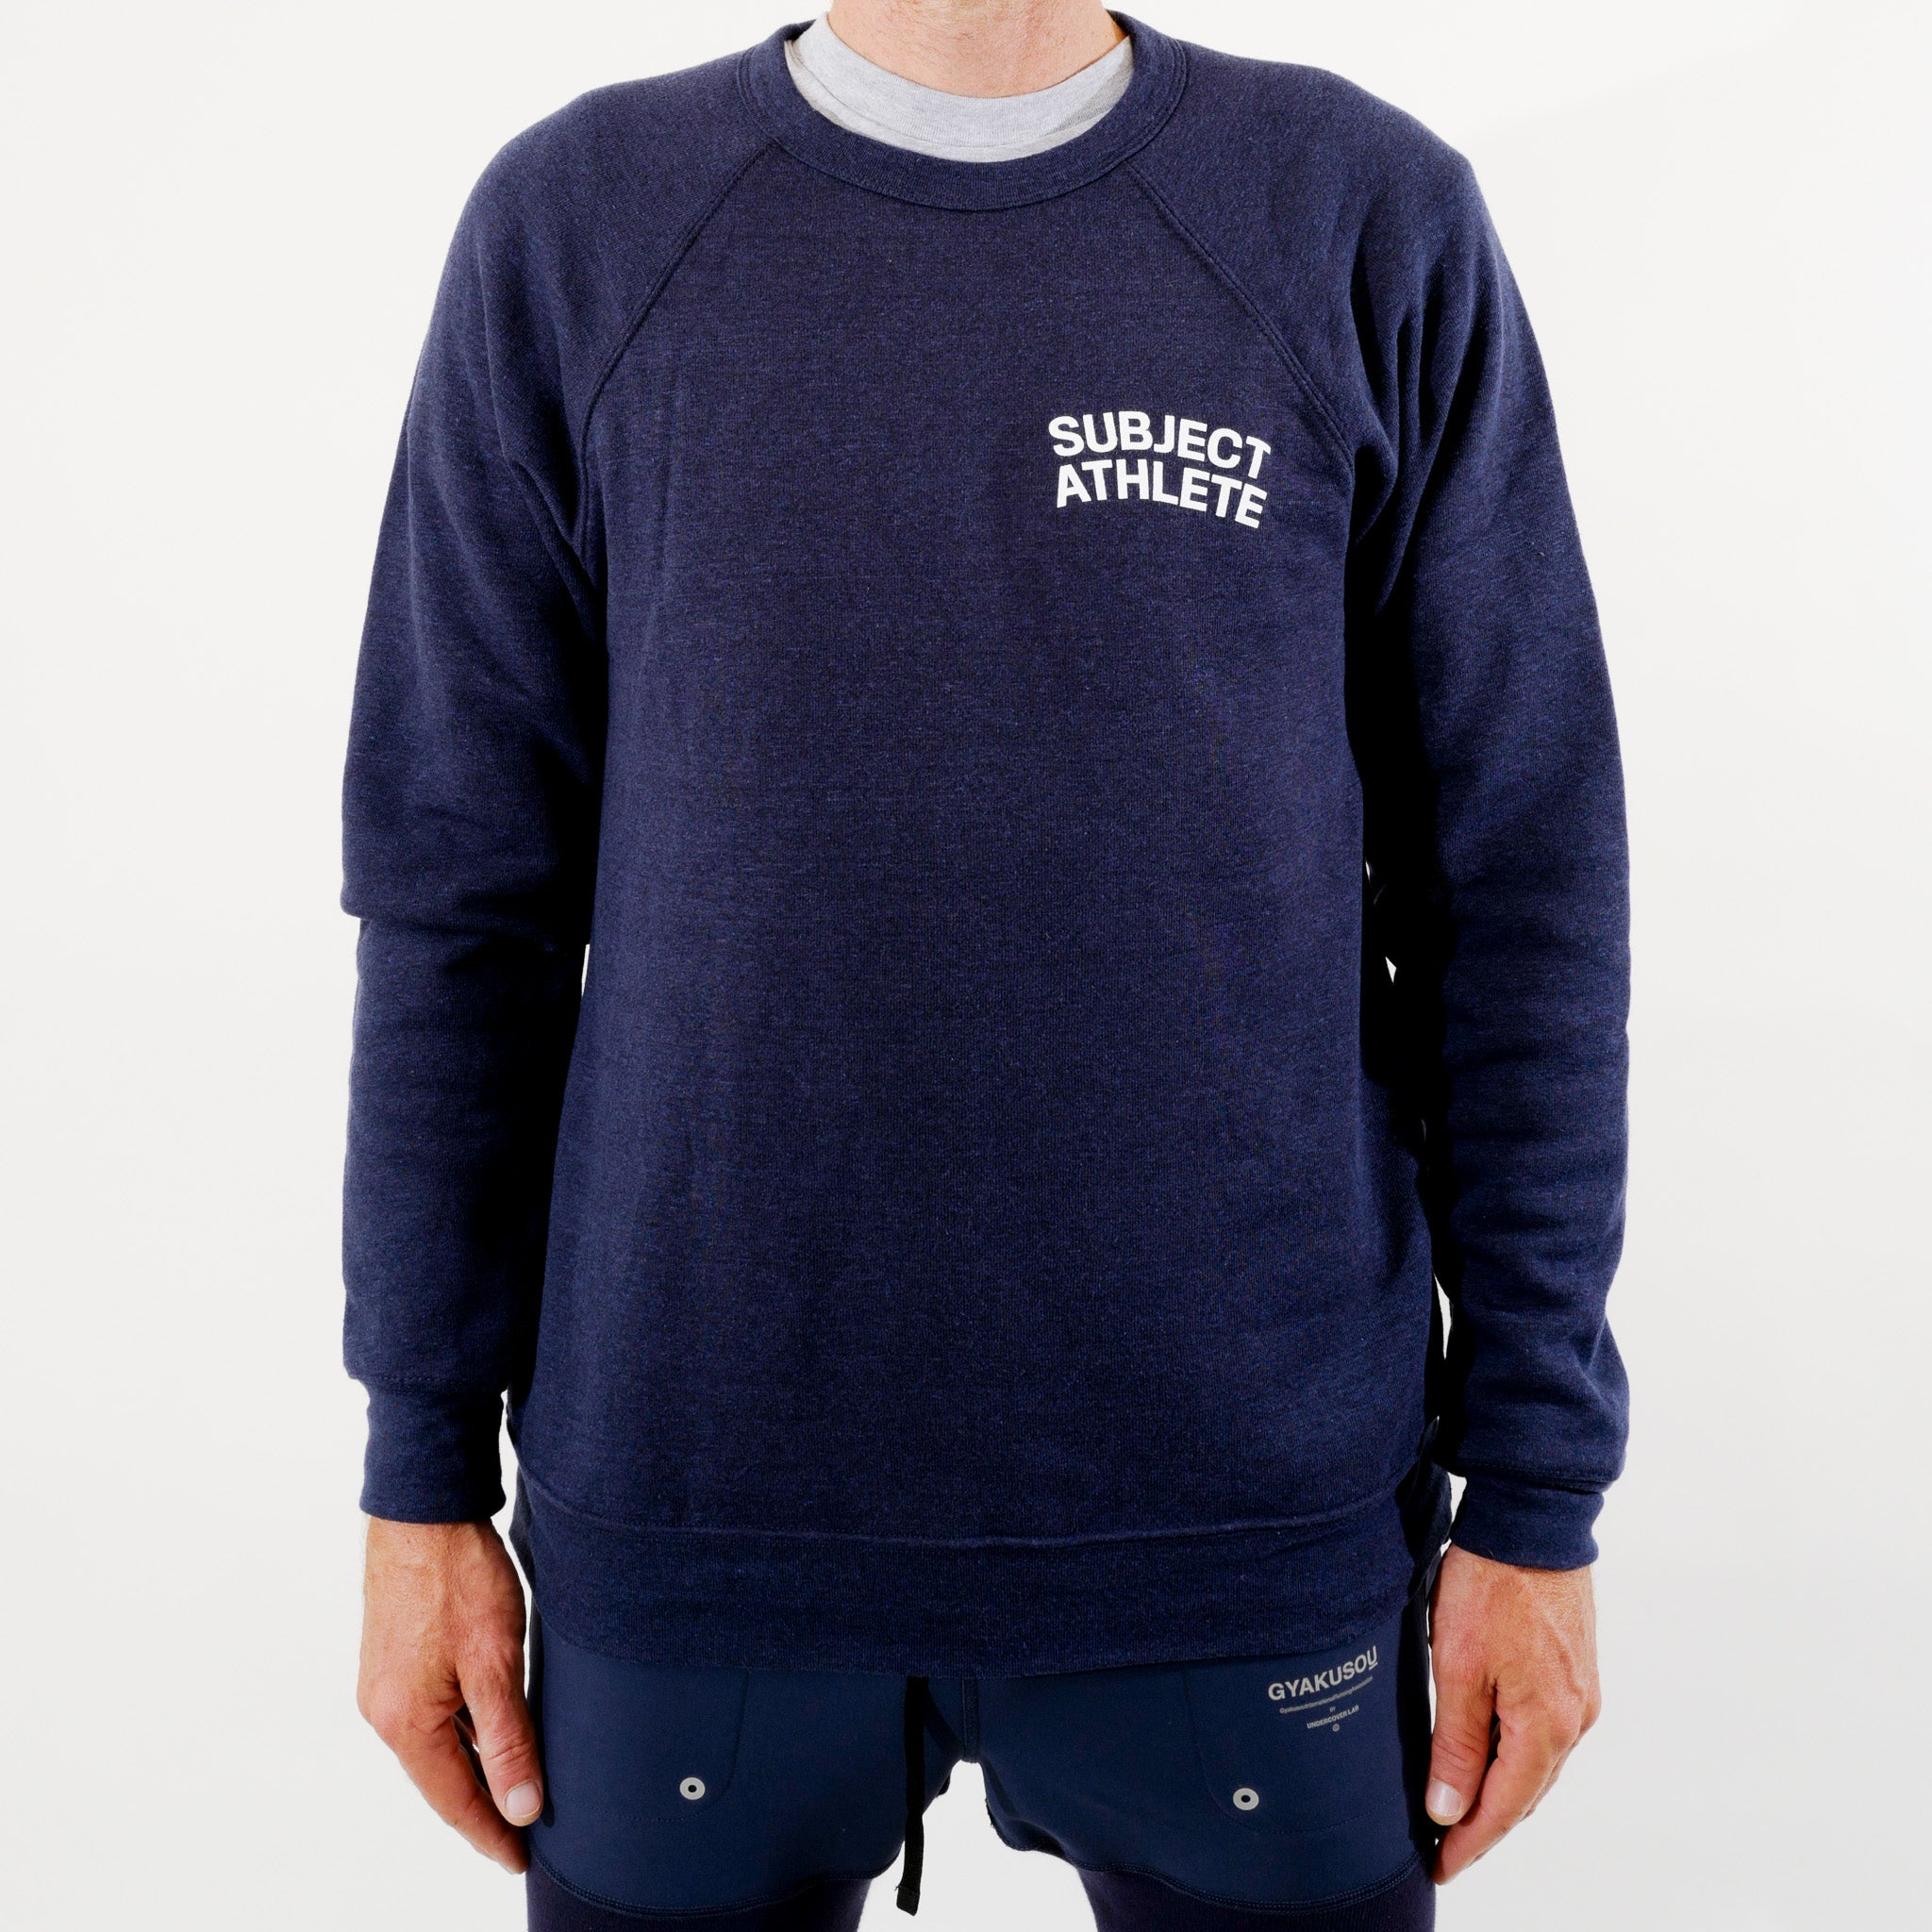 Subject Athlete Sweatshirt